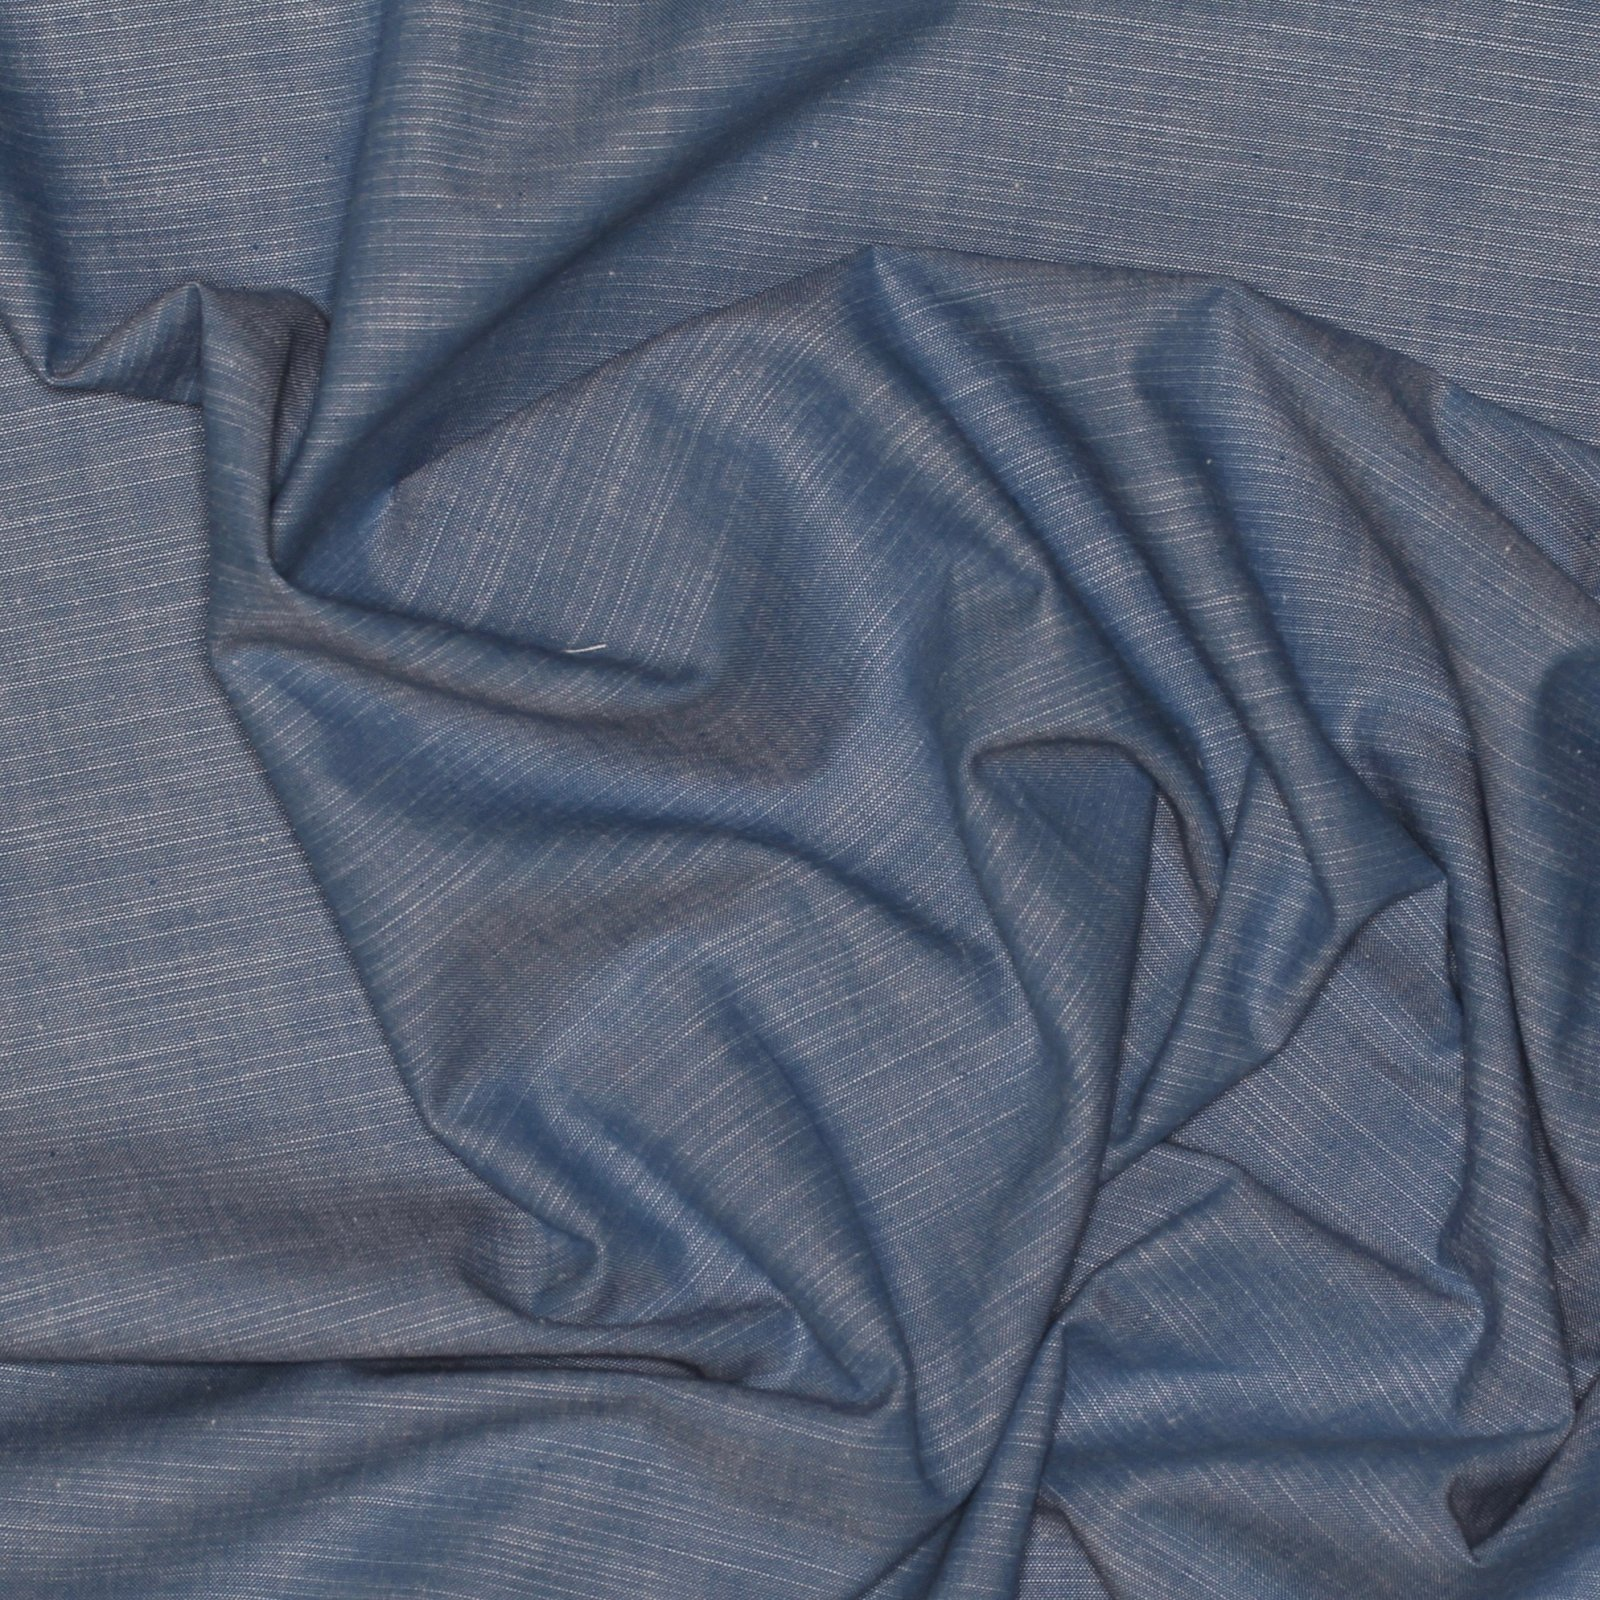 LIGHT DENIM CHAMBRAY COTTON/LINEN BLEND